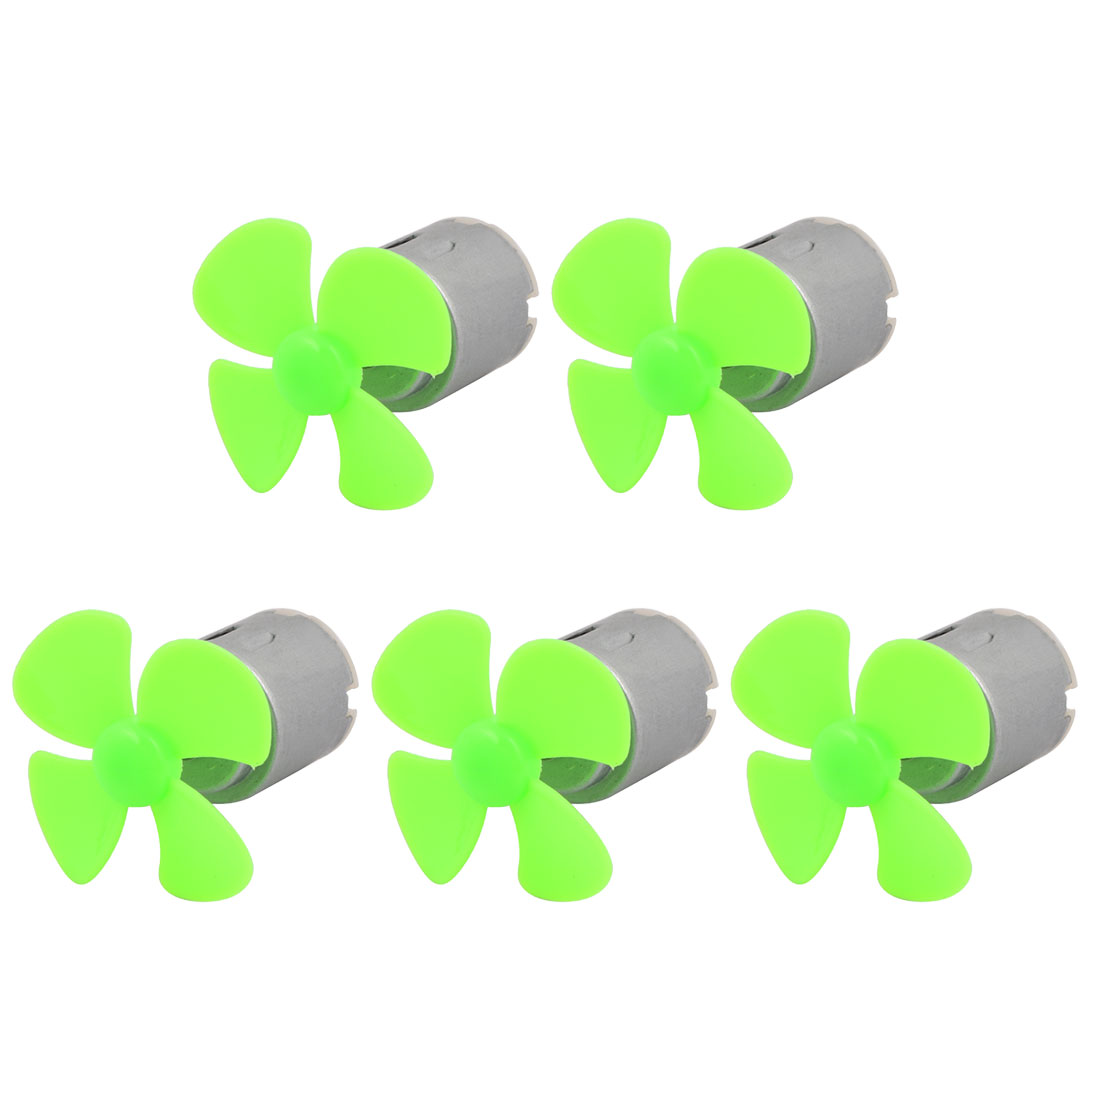 5pcs DC 3V 0.13A 11500RPM Strong Force Motor 4 Vanes 40mm Green Propeller for RC Aircraft